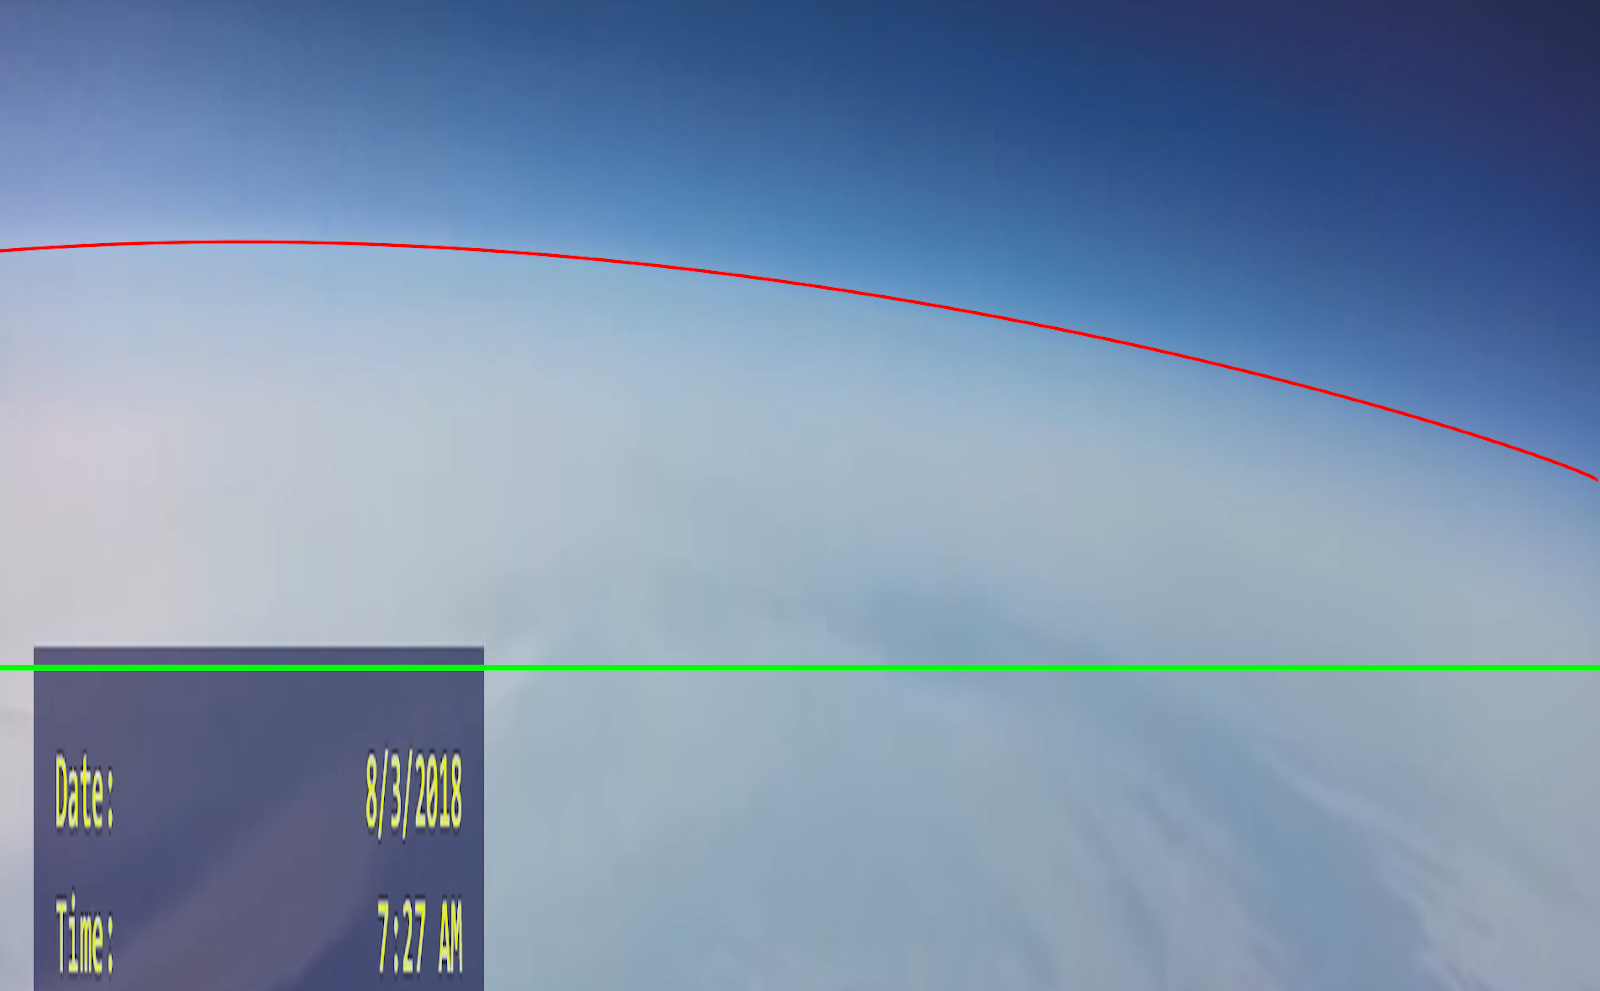 Earth curvature from a high-altitude balloon - stretched